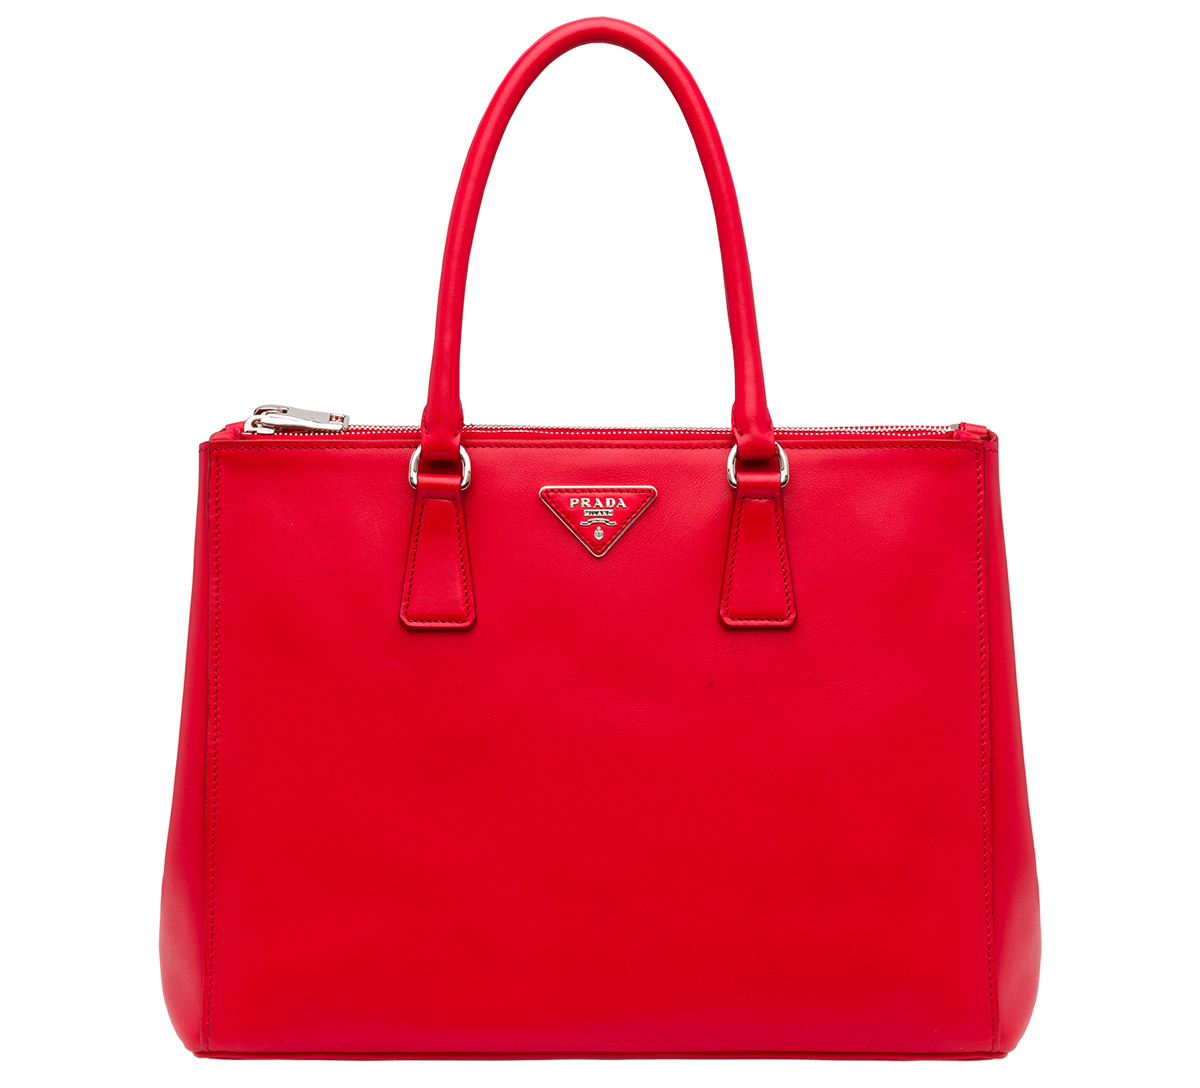 5c61e4b6073325 where to buy red prada bag leather 497be c5427